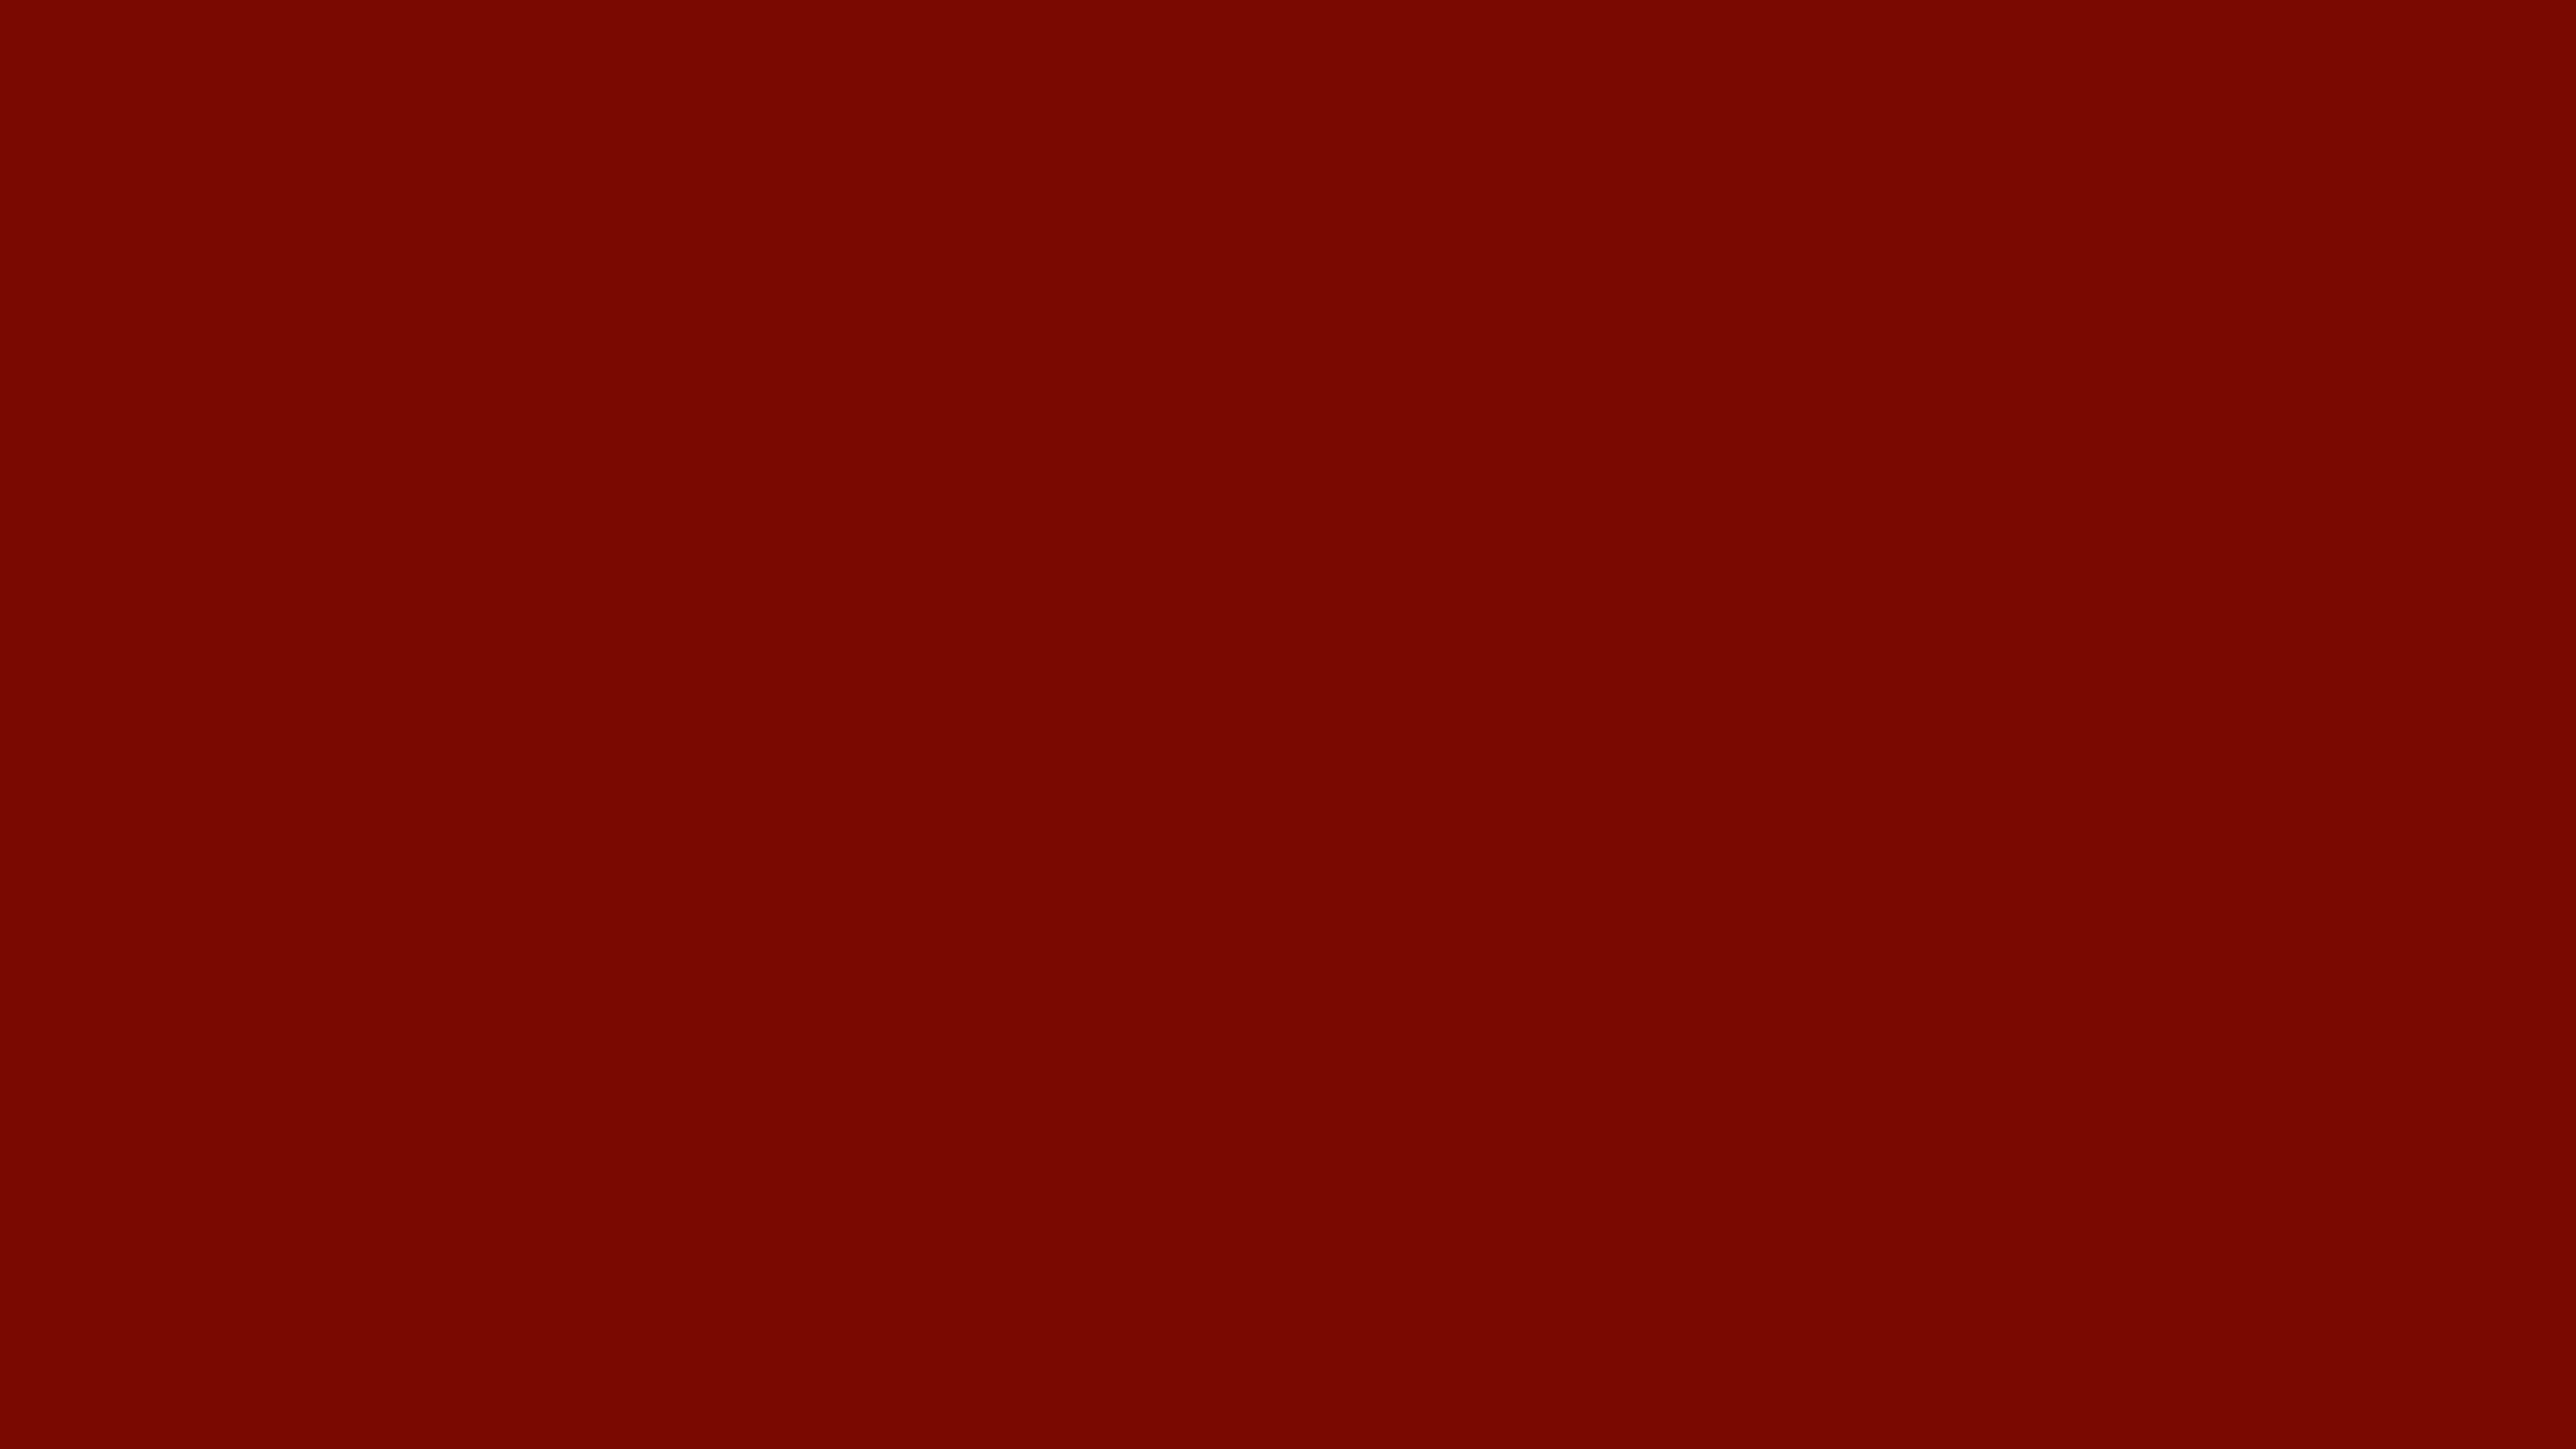 7680x4320 Barn Red Solid Color Background